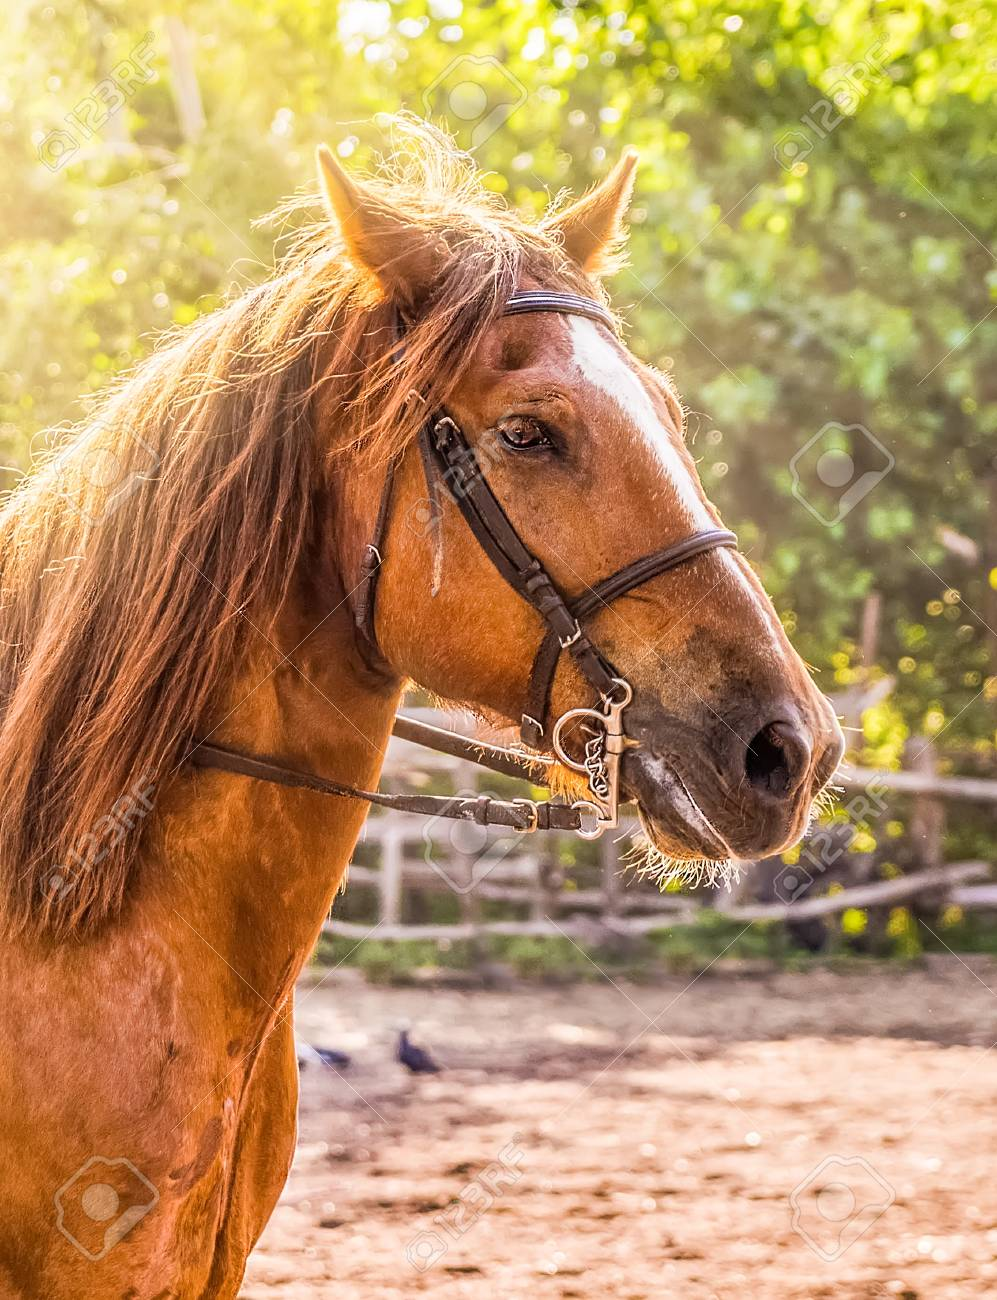 Sorrel Horse Side View Head Shot Of A Bay Stallion Portrait Stock Photo Picture And Royalty Free Image Image 102637794